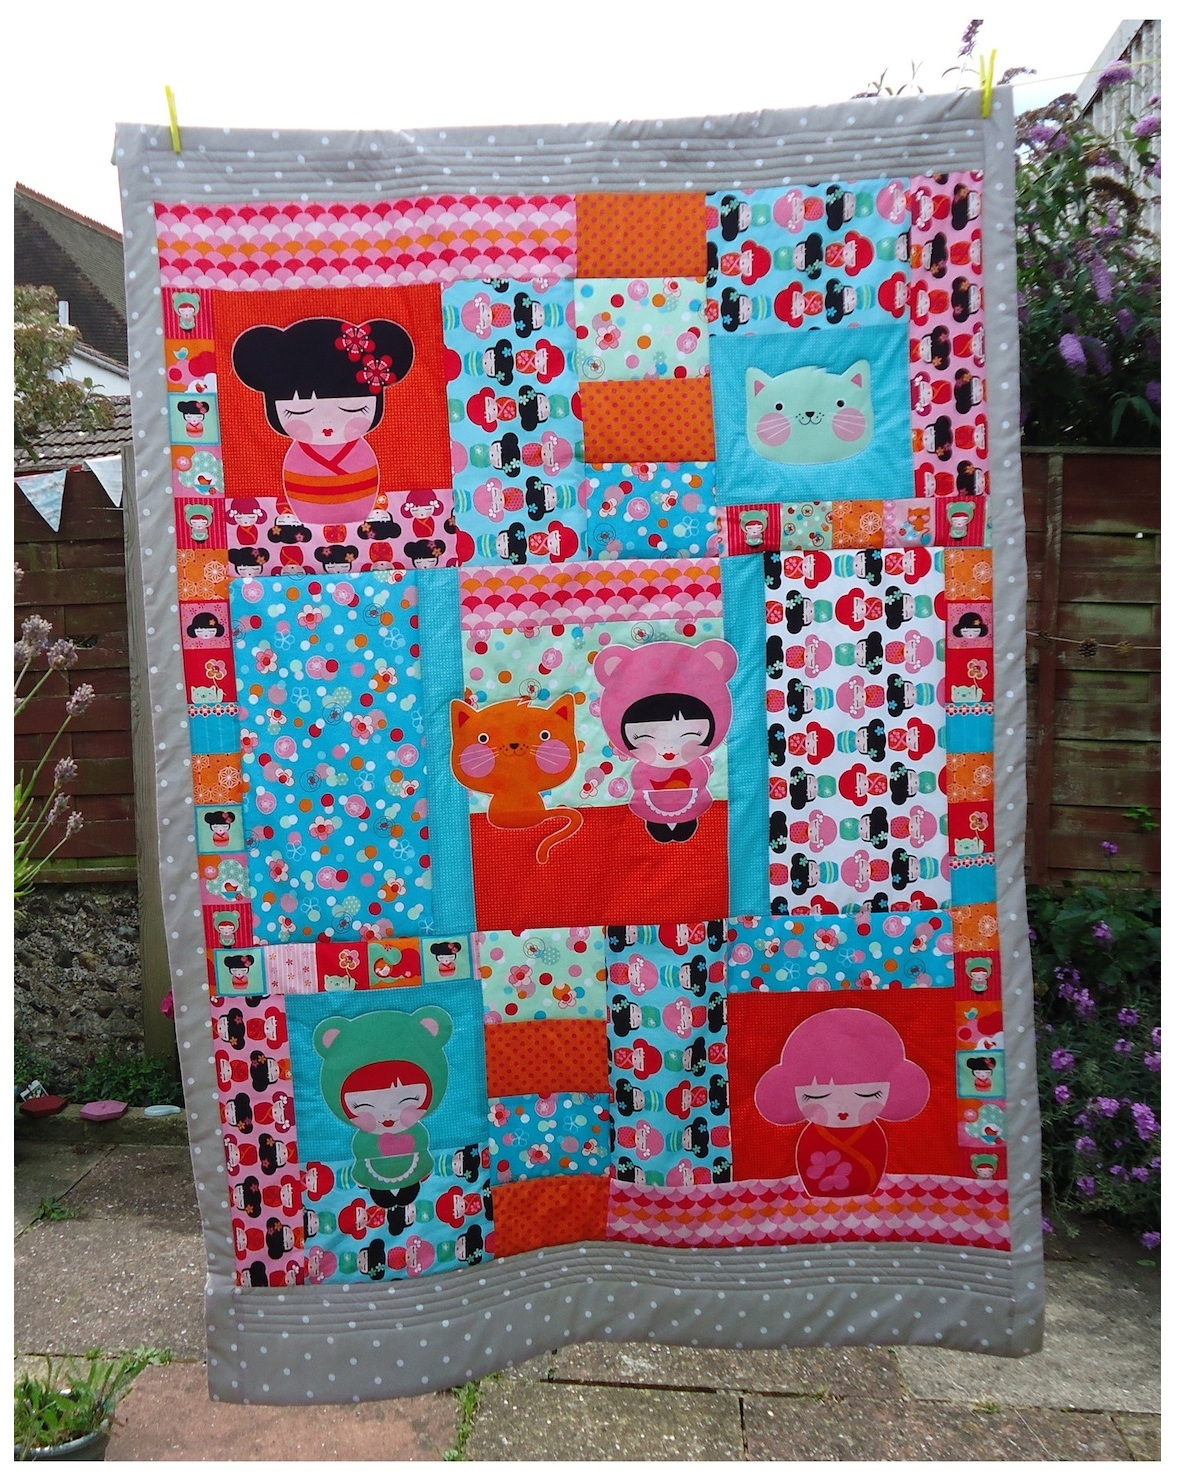 Hello Tokyo Quilt by Ivy Arch